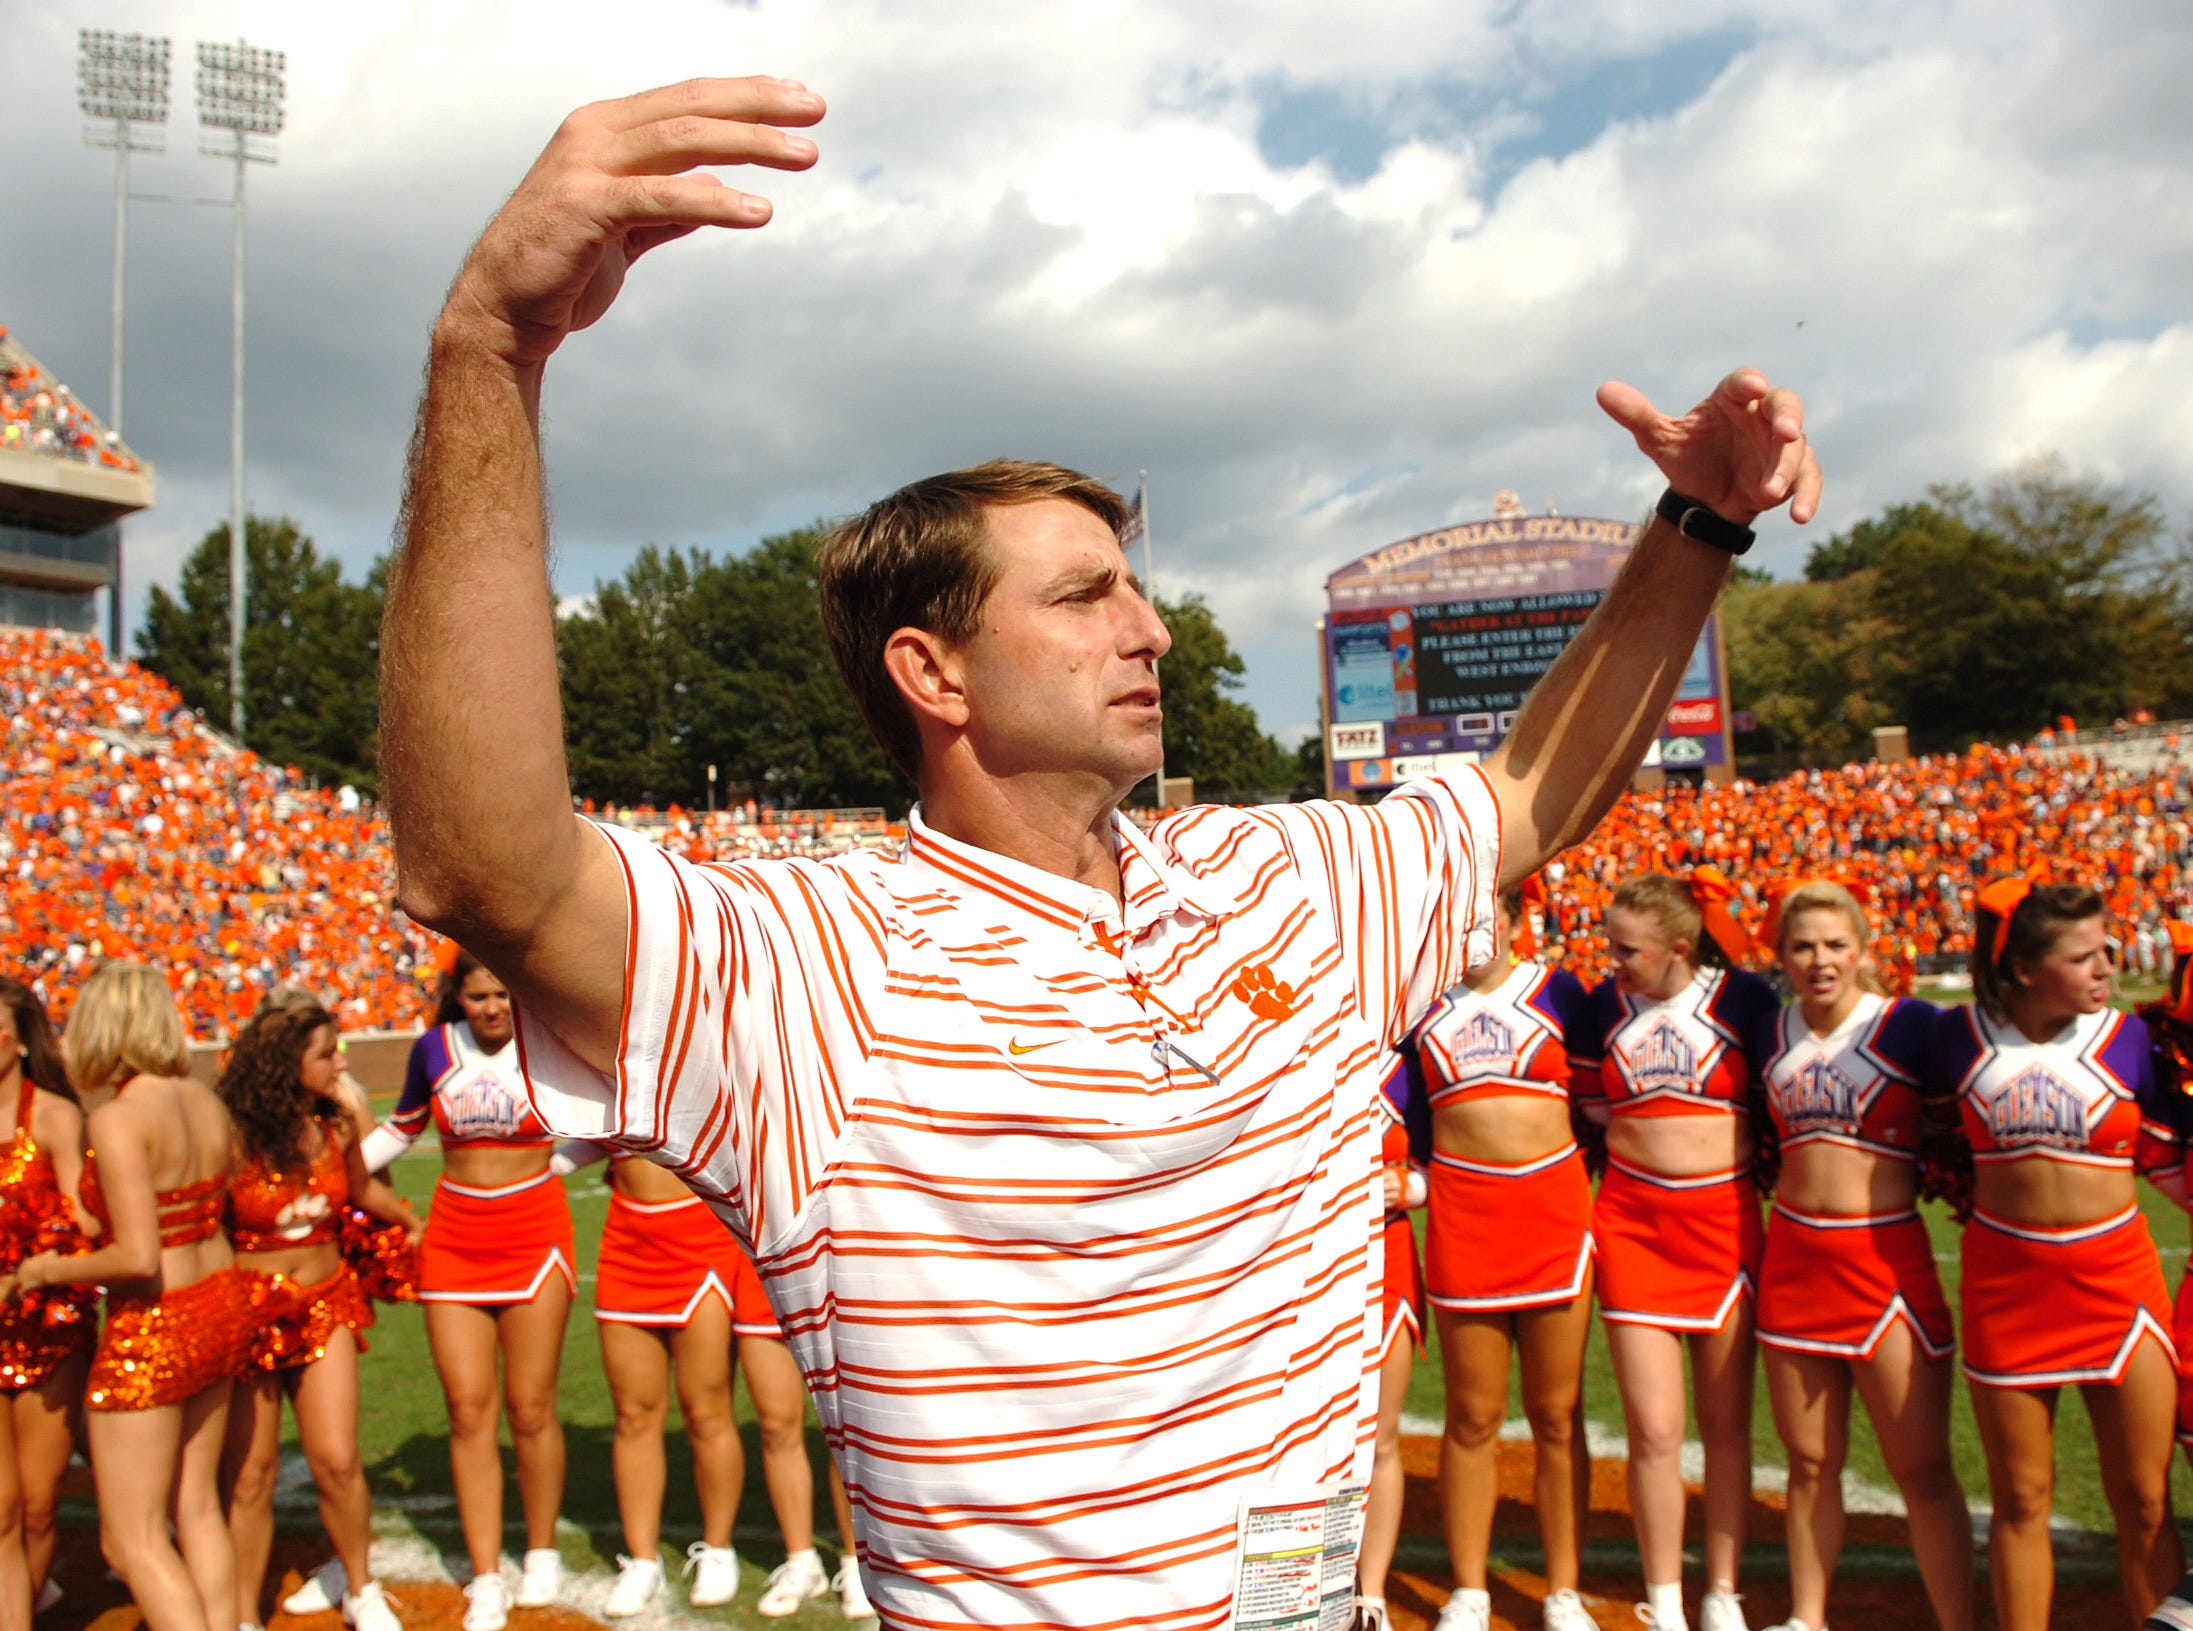 Clemson's  interim head Coach Dabo Swinney gathers his team at center field as the band plays the school's alma mater after the Tigers 21-17 loss to Georgia Tech Saturday, Oct. 18, 2008 at Clemson's Memorial Stadium.